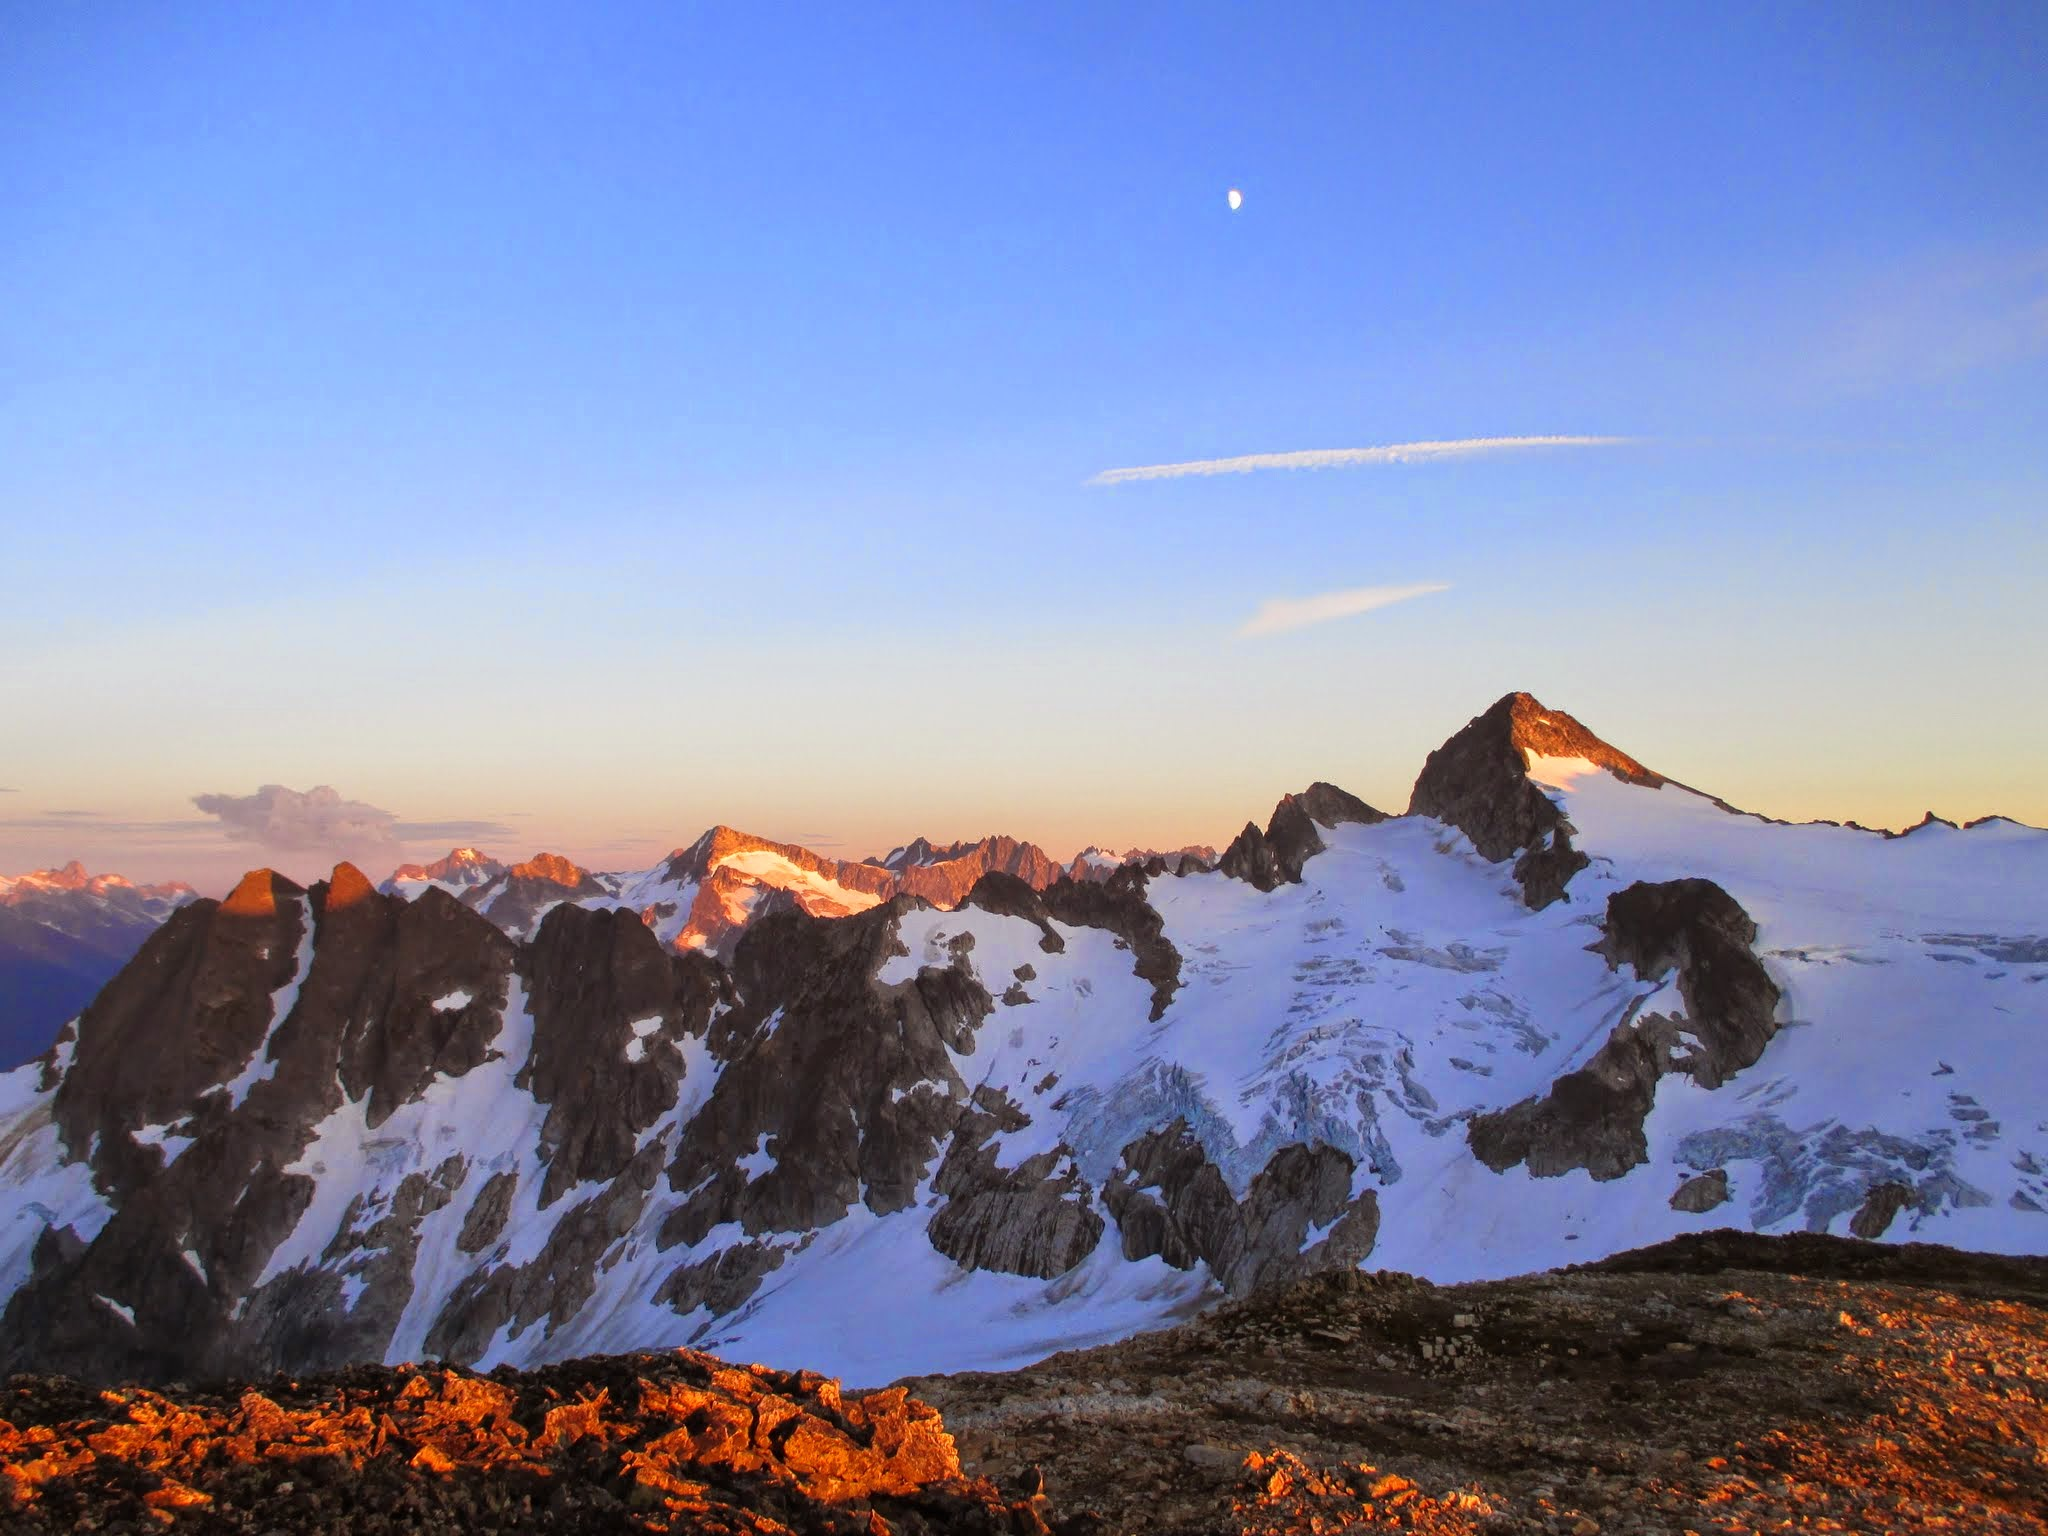 Snowfield, Mantis and Phalanx alpenglow